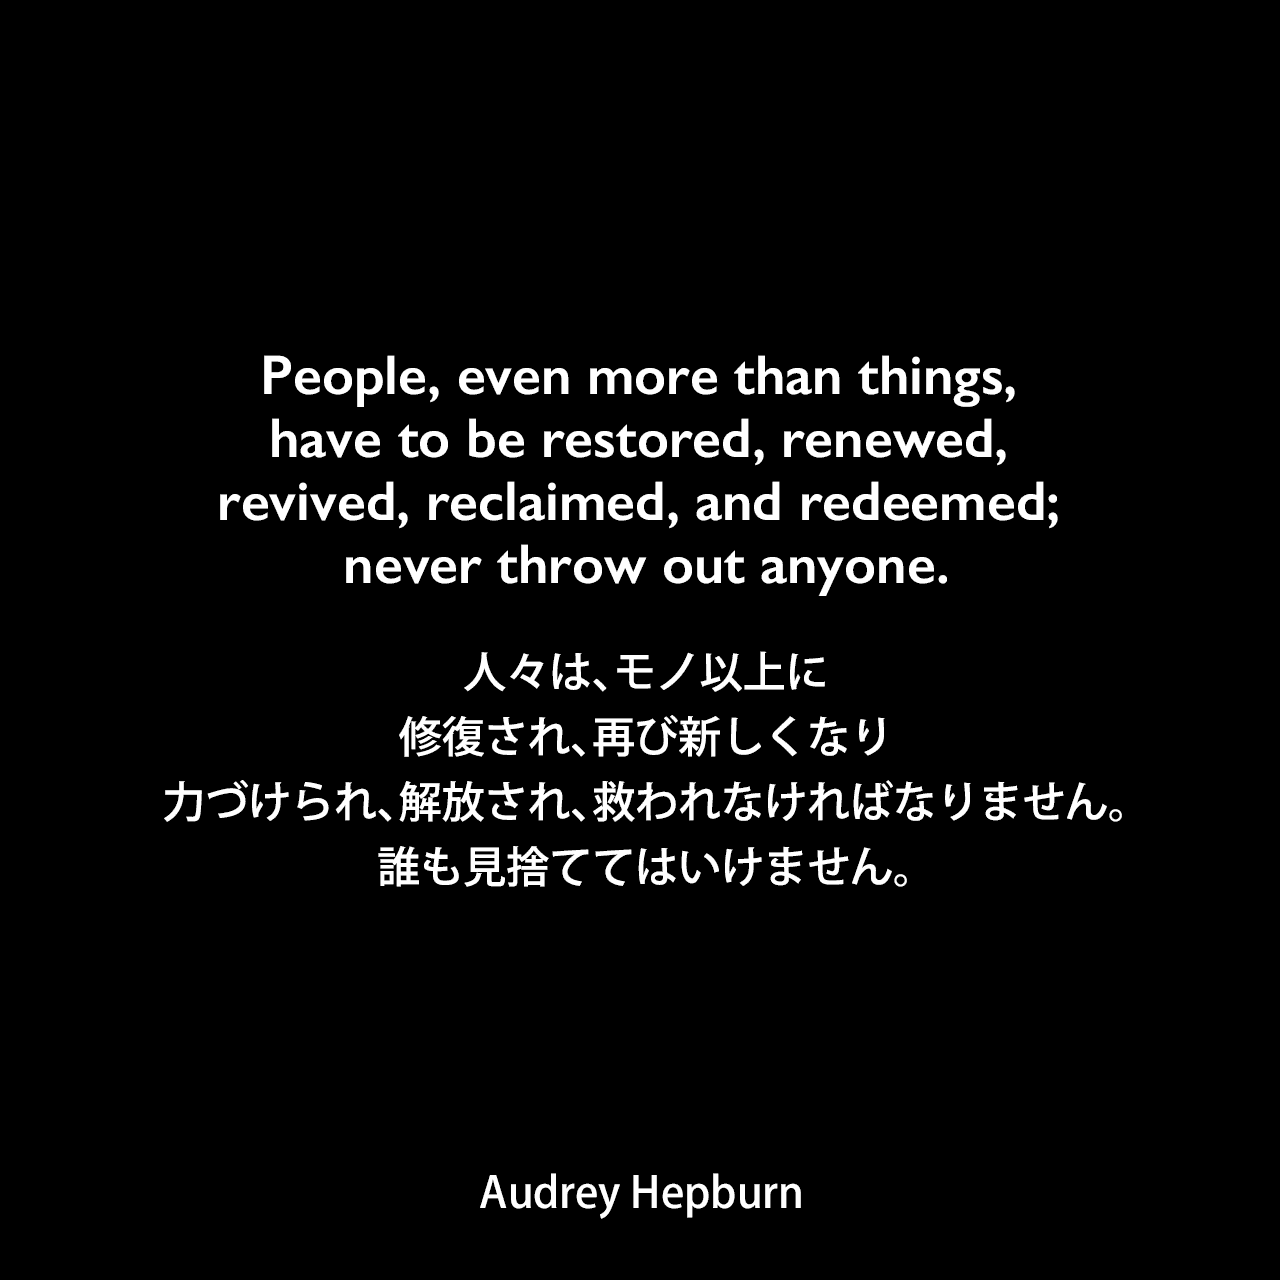 People, even more than things, have to be restored, renewed, revived, reclaimed, and redeemed; never throw out anyone.人々は、モノ以上に修復され、再び新しくなり、力づけられ、解放され、救われなければなりません。誰も見捨ててはいけません。